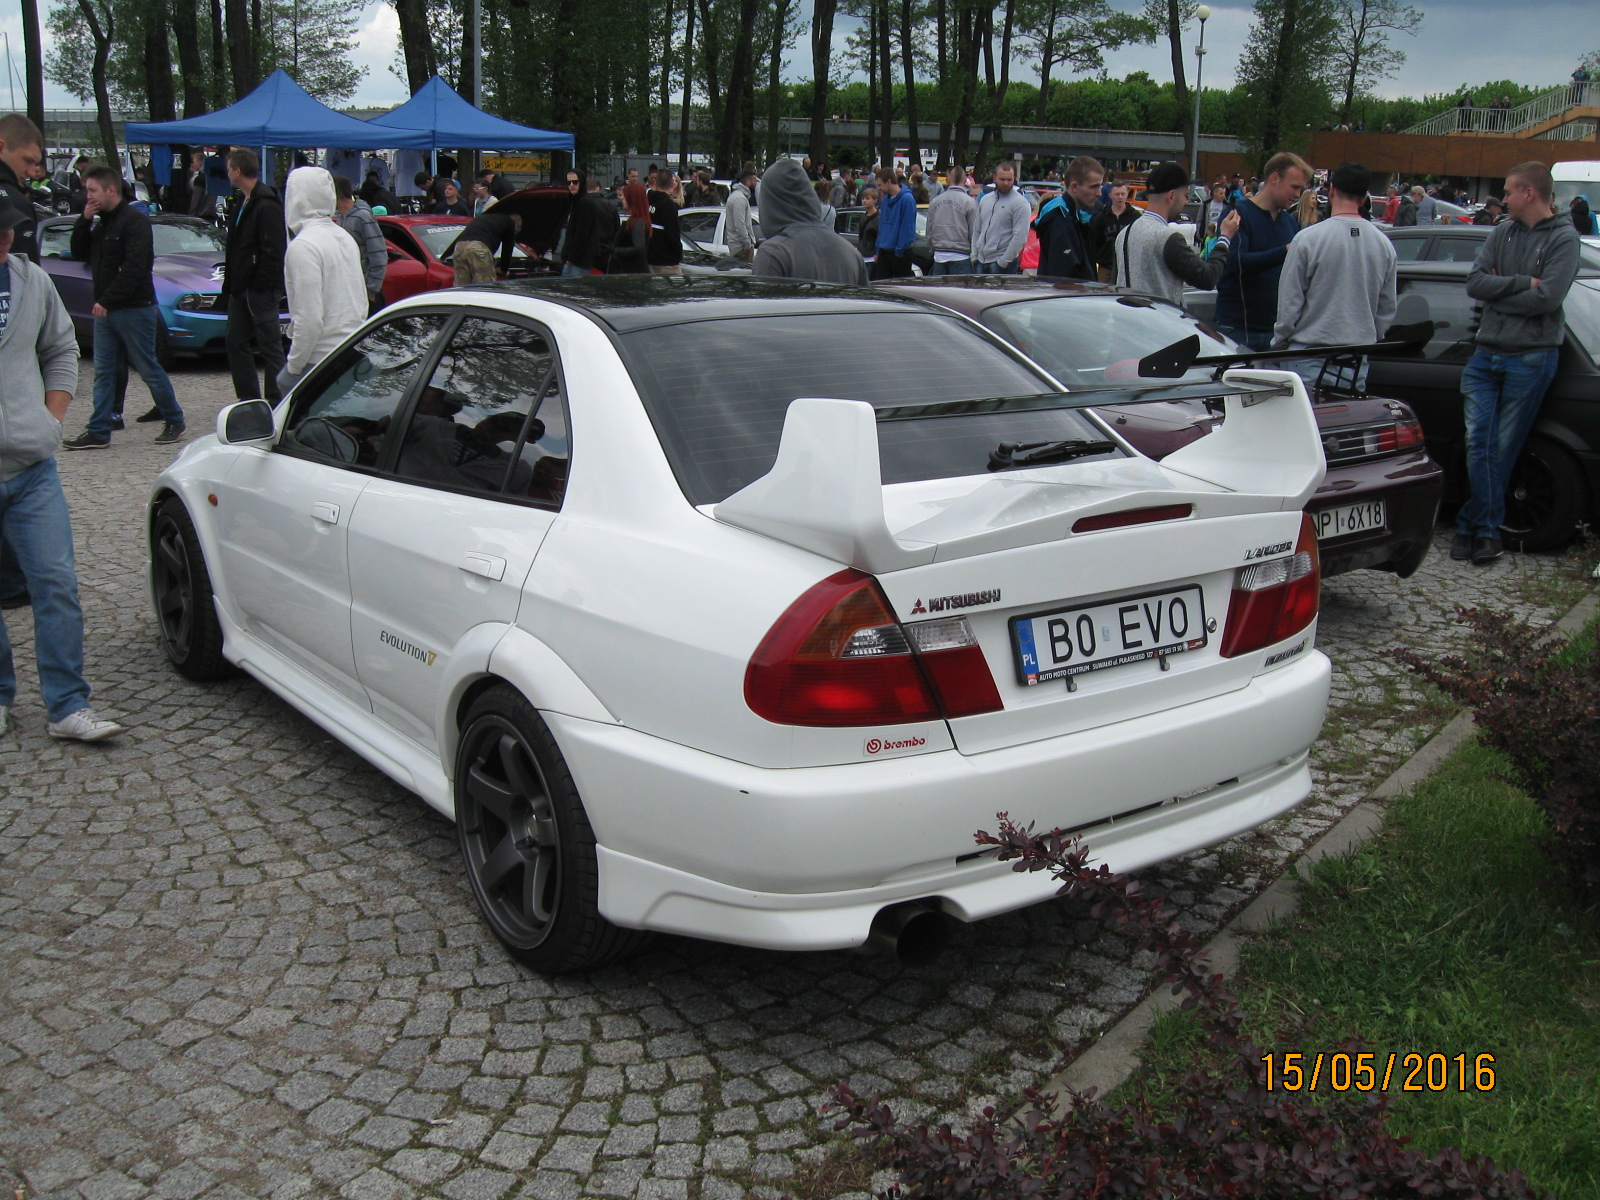 http://124coupe.pl/hosting/images/1463322288.jpg